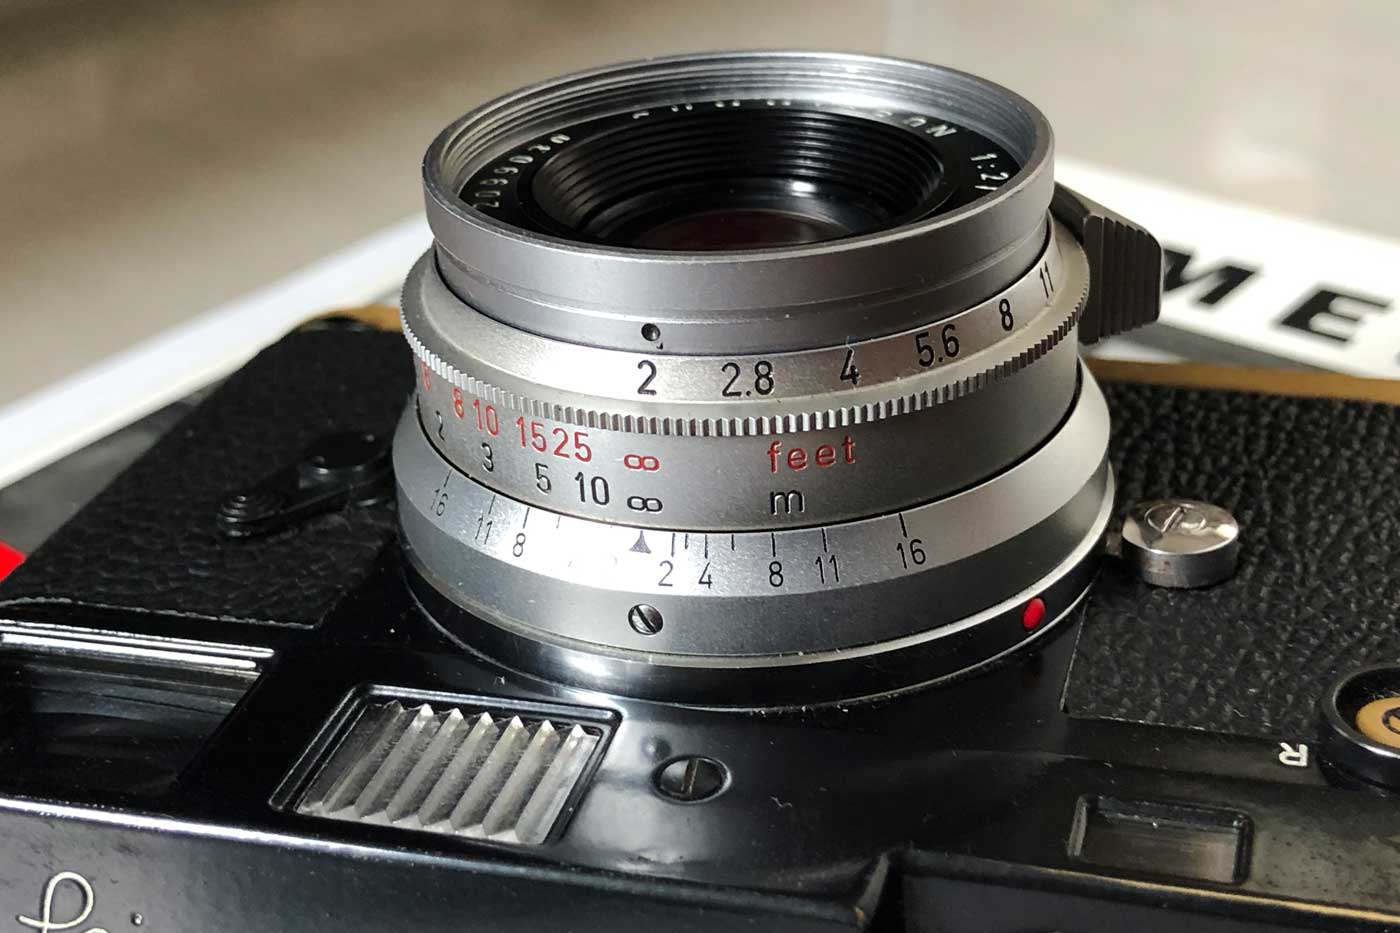 Leica-summicron-35mm-f2-8element-8-element-v1-version1-lens-review-blog-sharing-thoughts-compare-7element-gear-how-performance-m-mount-8mui-barrel-even-aperture-ring-focusing-distance